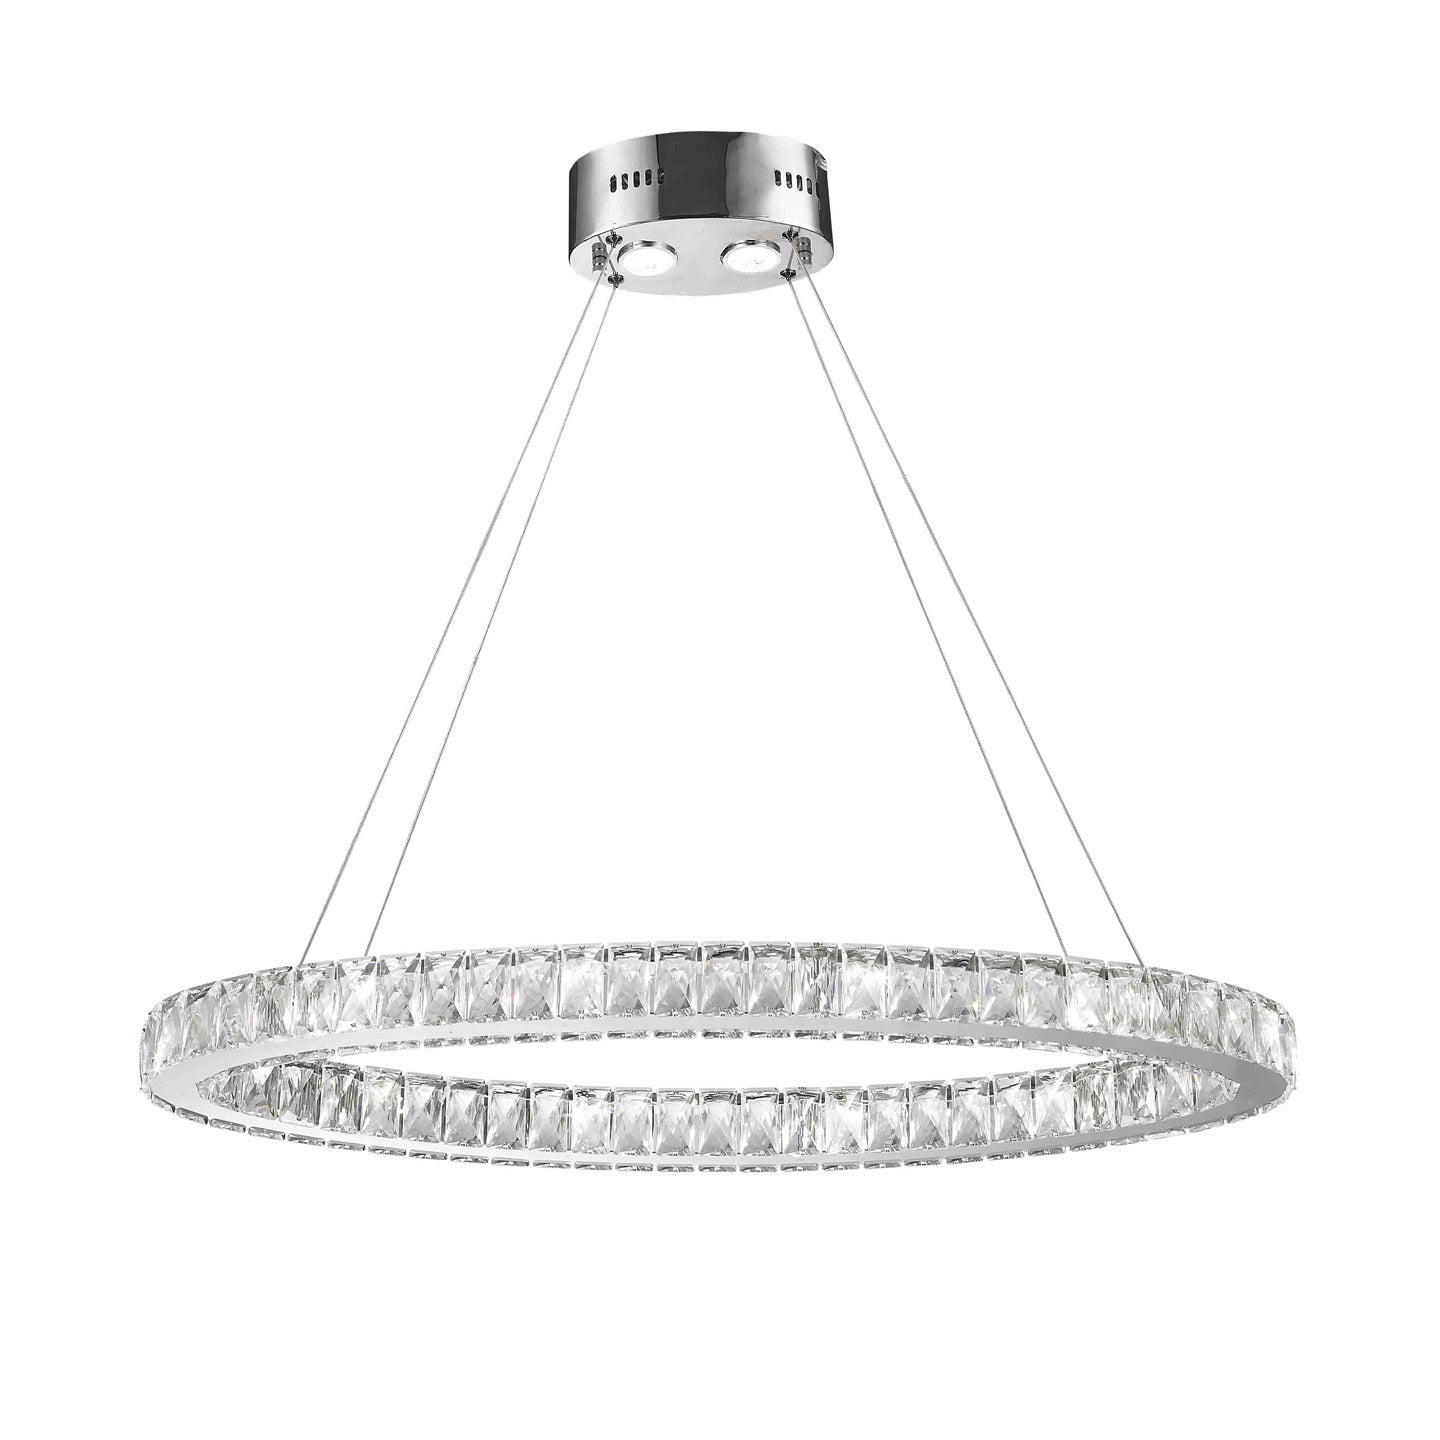 Galaxy 14 led light chrome finish and clear crystal oval ring galaxy 14 led light chrome finish and clear crystal oval ring chandelier free shipping today overstock 18761766 arubaitofo Choice Image